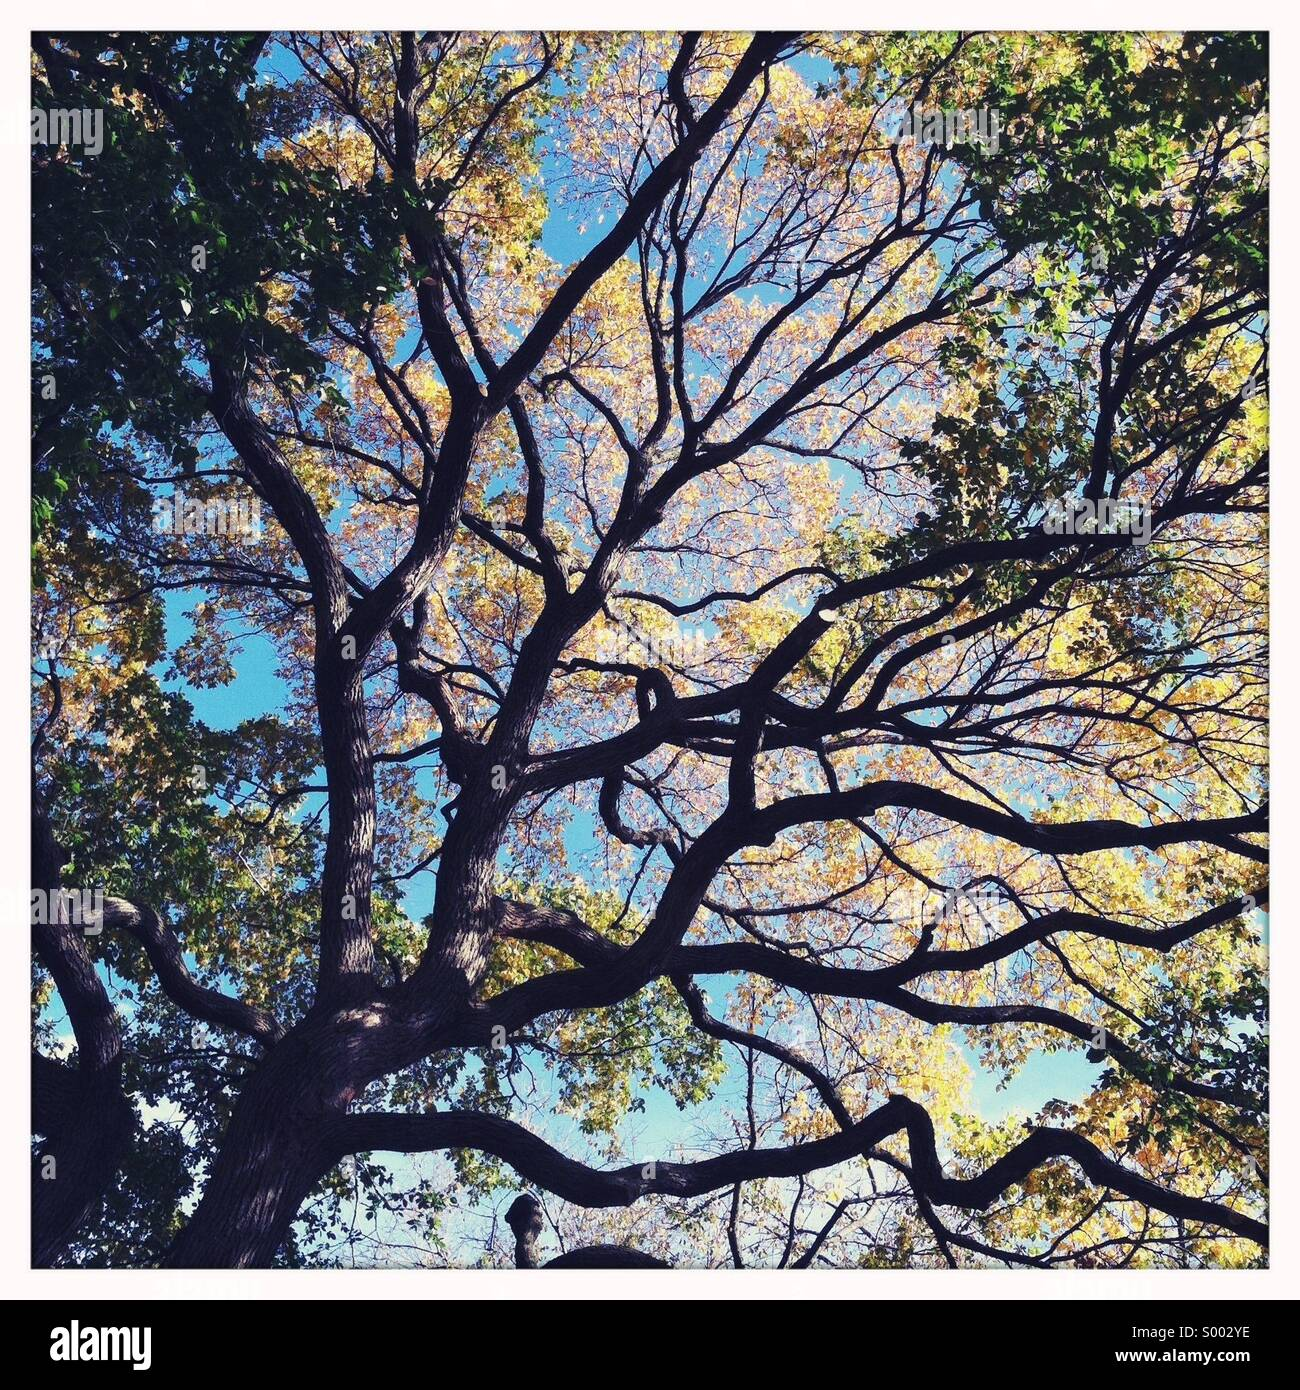 Looking skyward thru a large old tree - Stock Image